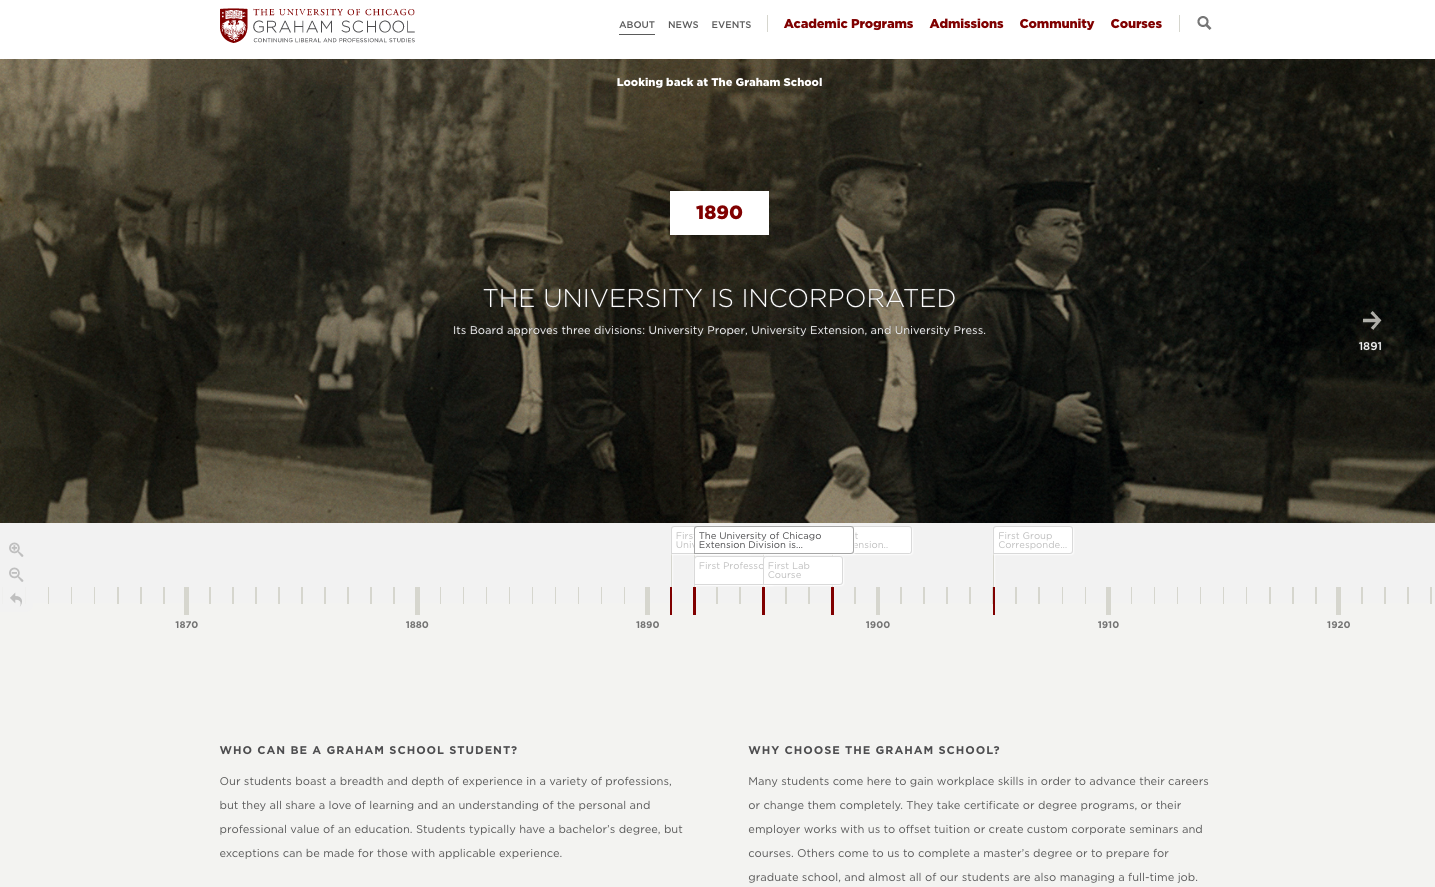 Snapshot of the University of Chicago's timeline